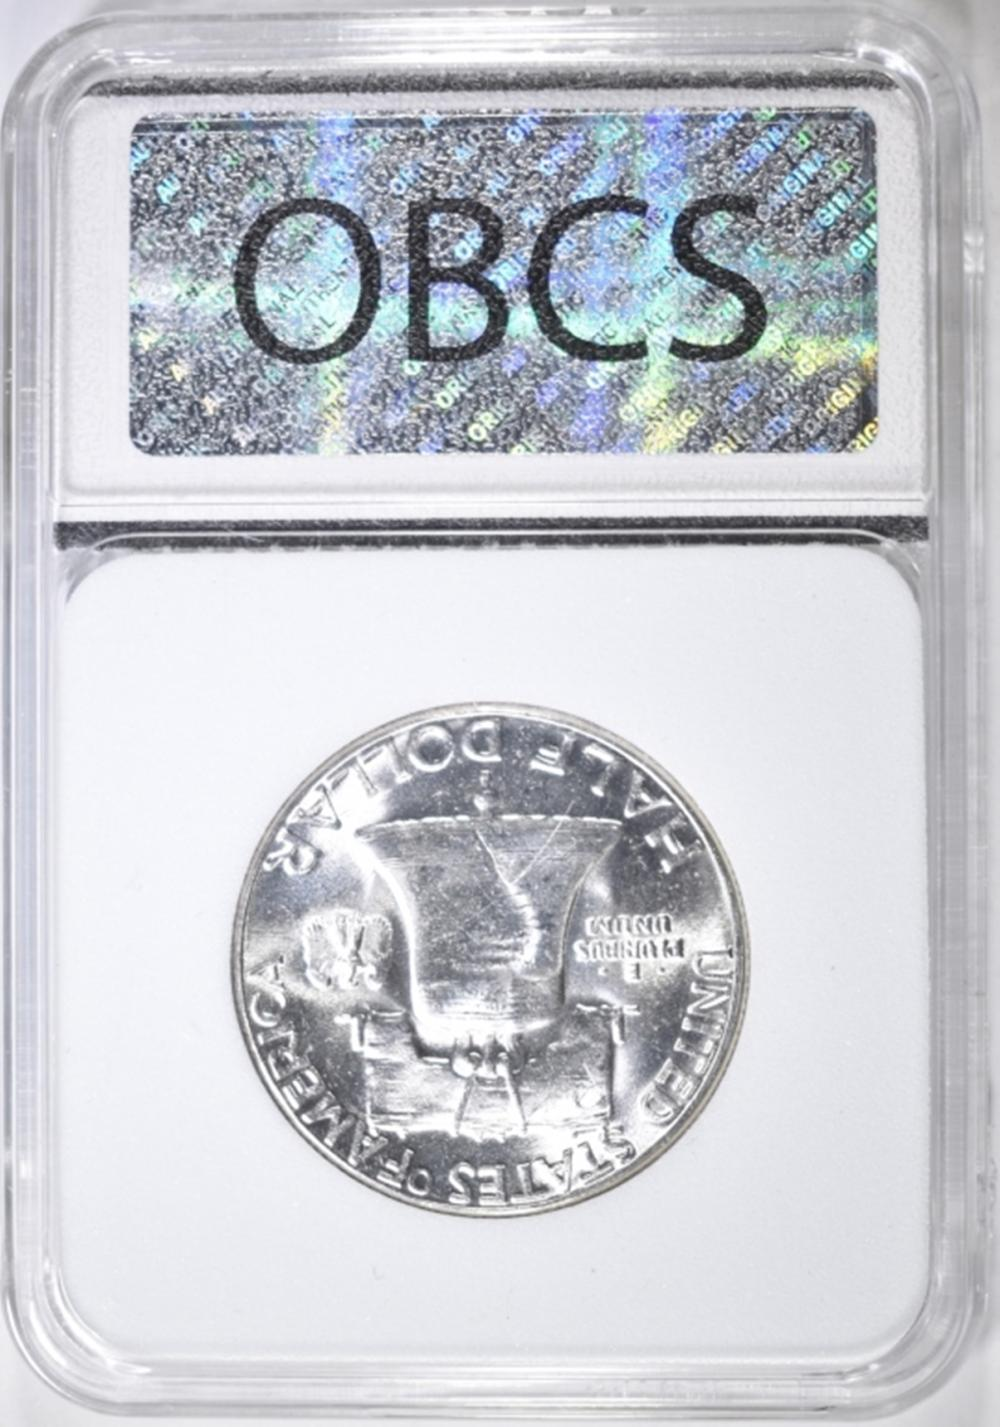 Lot 31: 1958 FRANKLIN HALF DOLLAR, OBCS GEM BU FBL